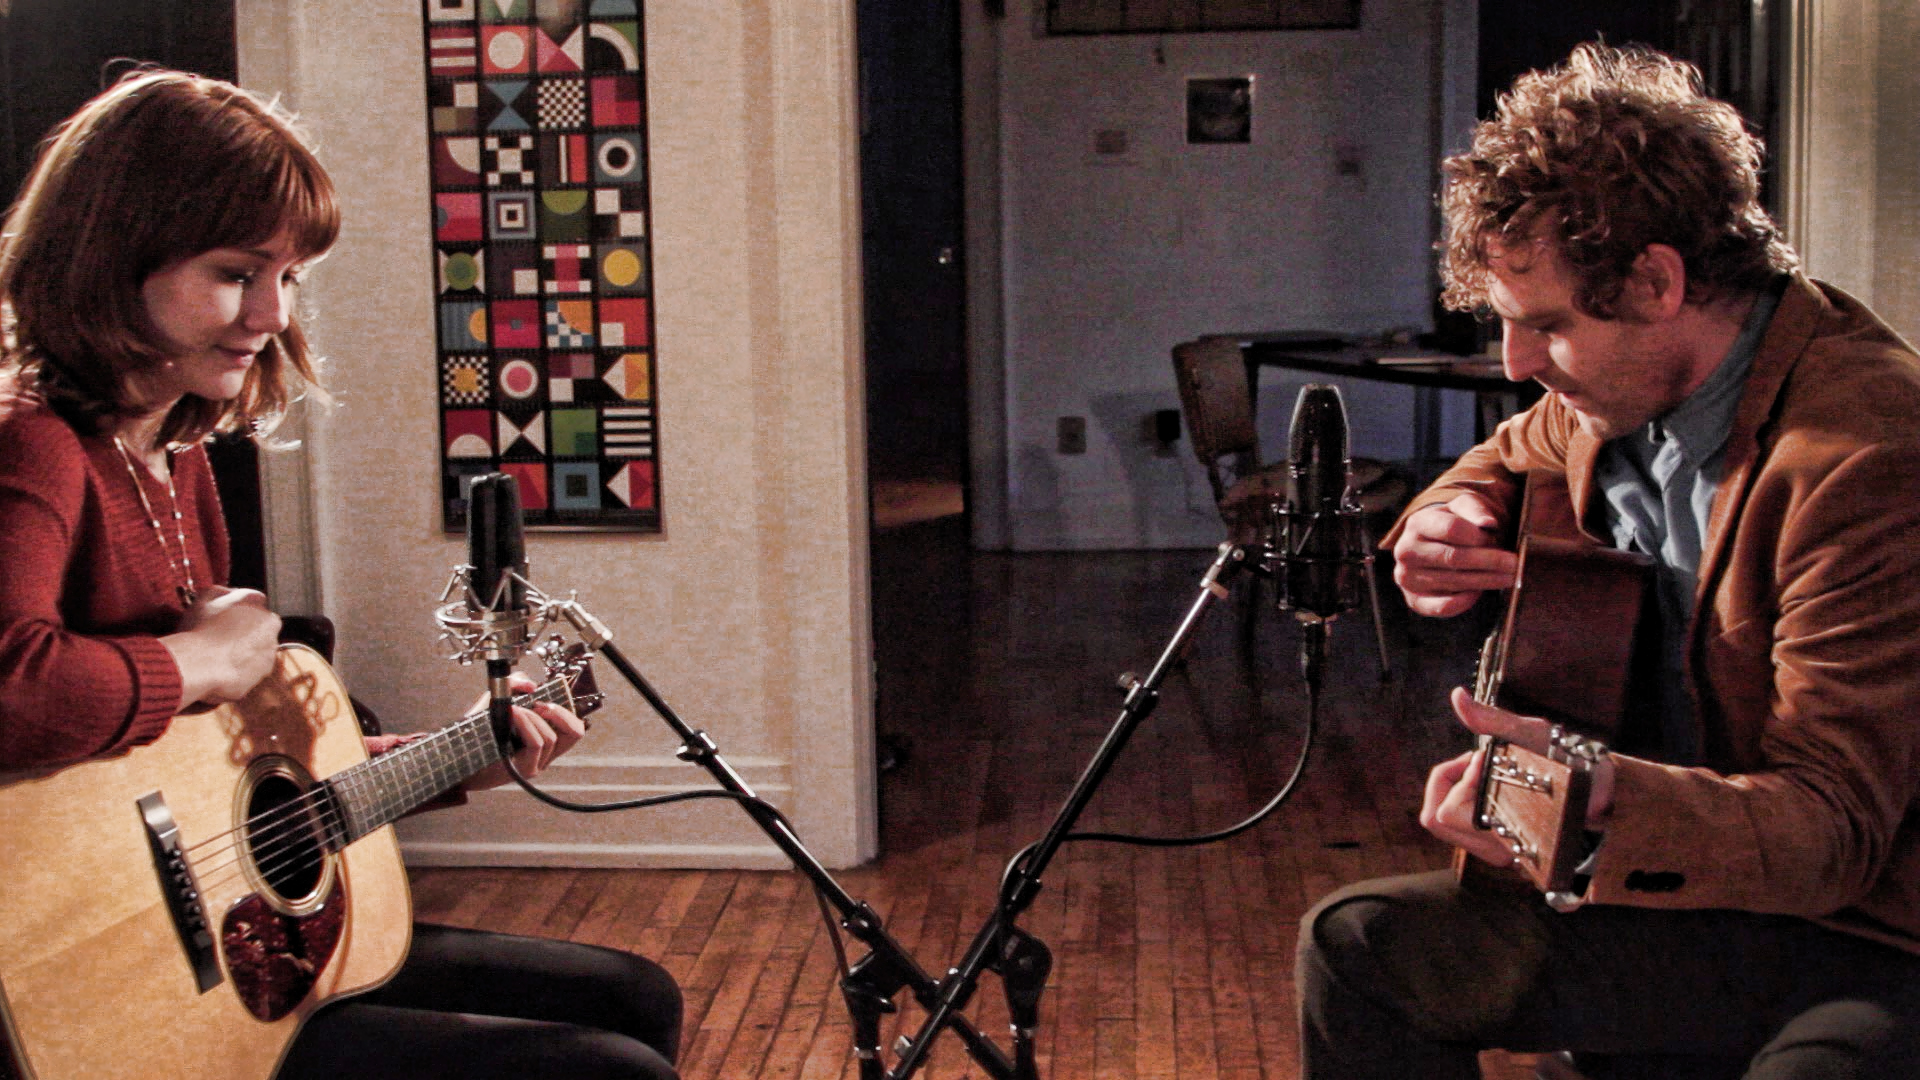 WATCH: Korby Lenker with Molly Tuttle, 'Friend and a Friend'